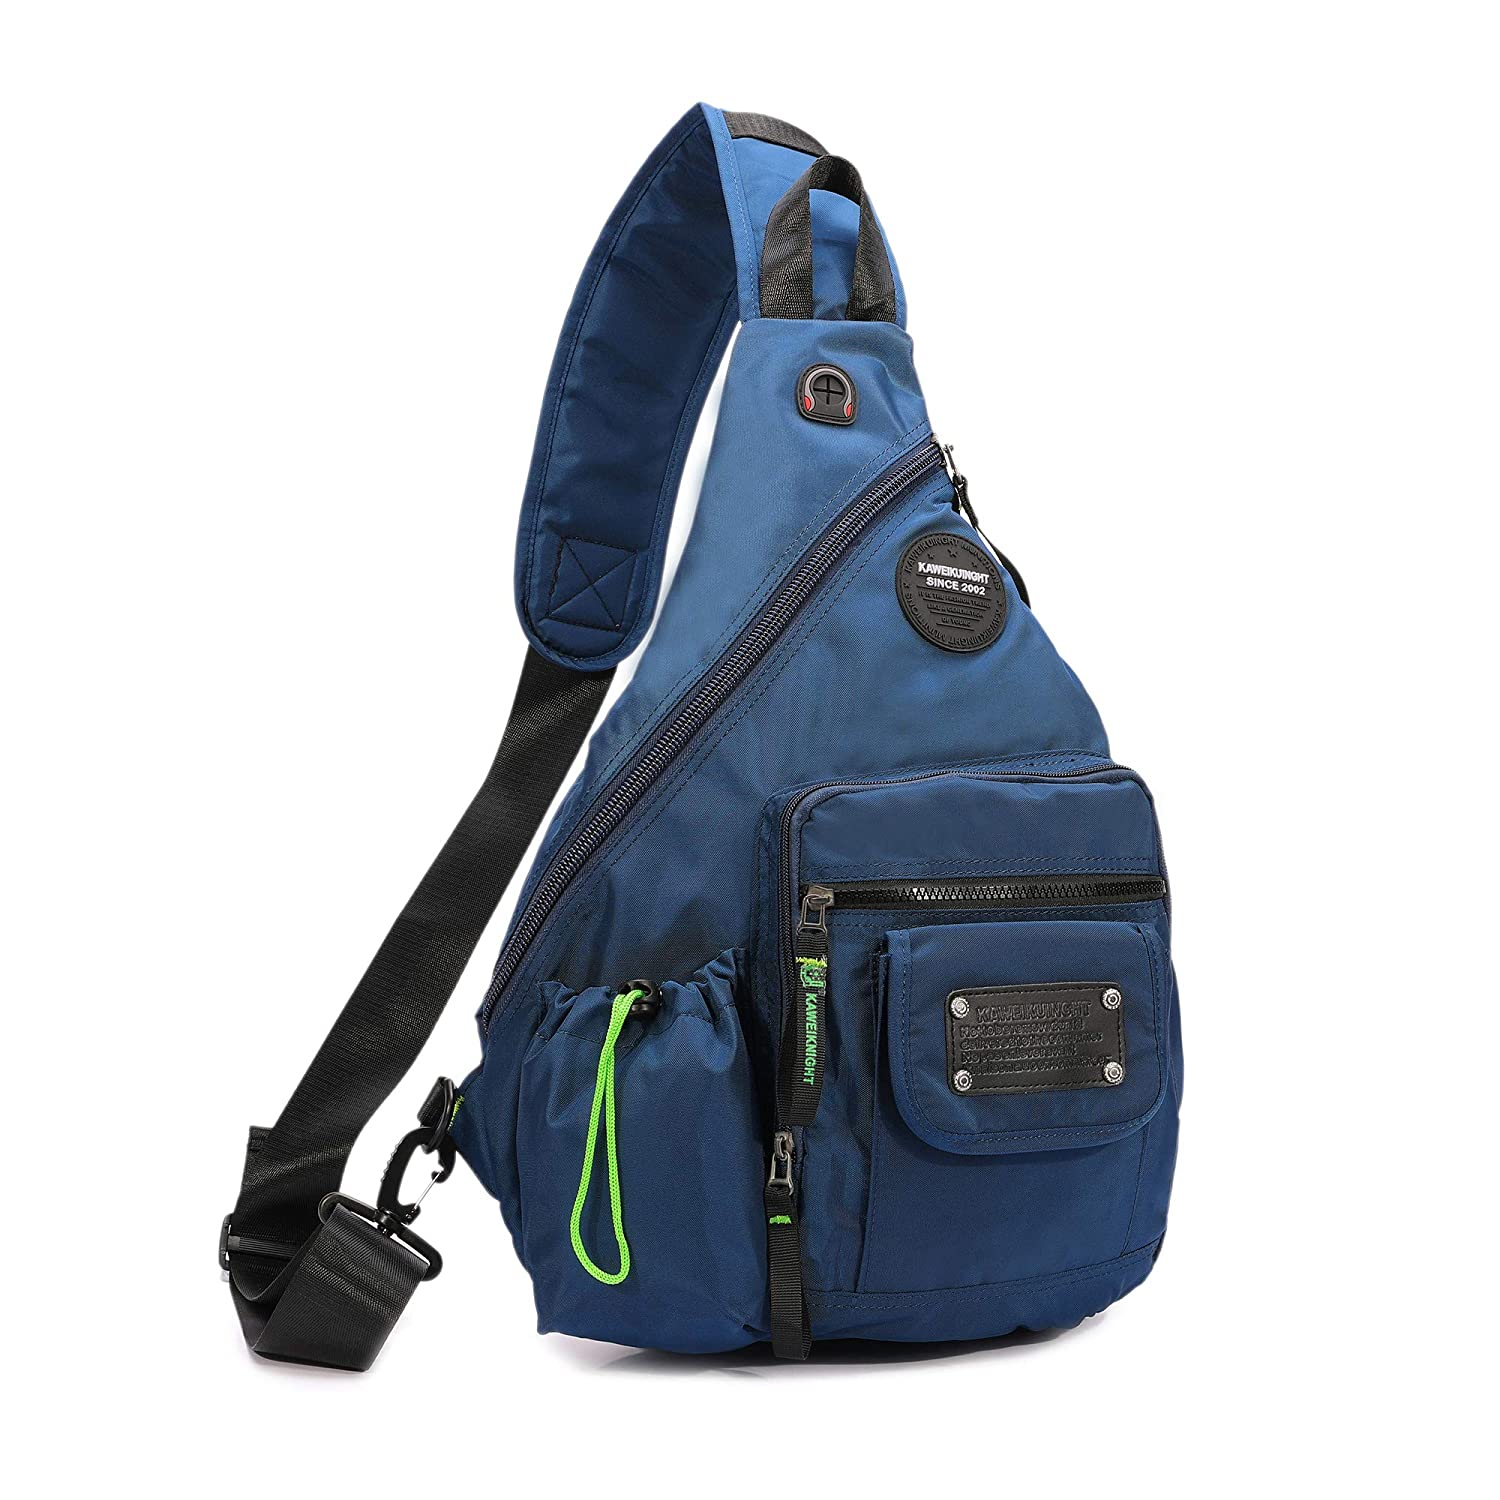 Amazon.com  DDDH 13.3-Inch Sling Bag Riding Hiking Bag Single Shoulder  Backpack for Men Women(Blue)  Sports   Outdoors 21a64082f3986